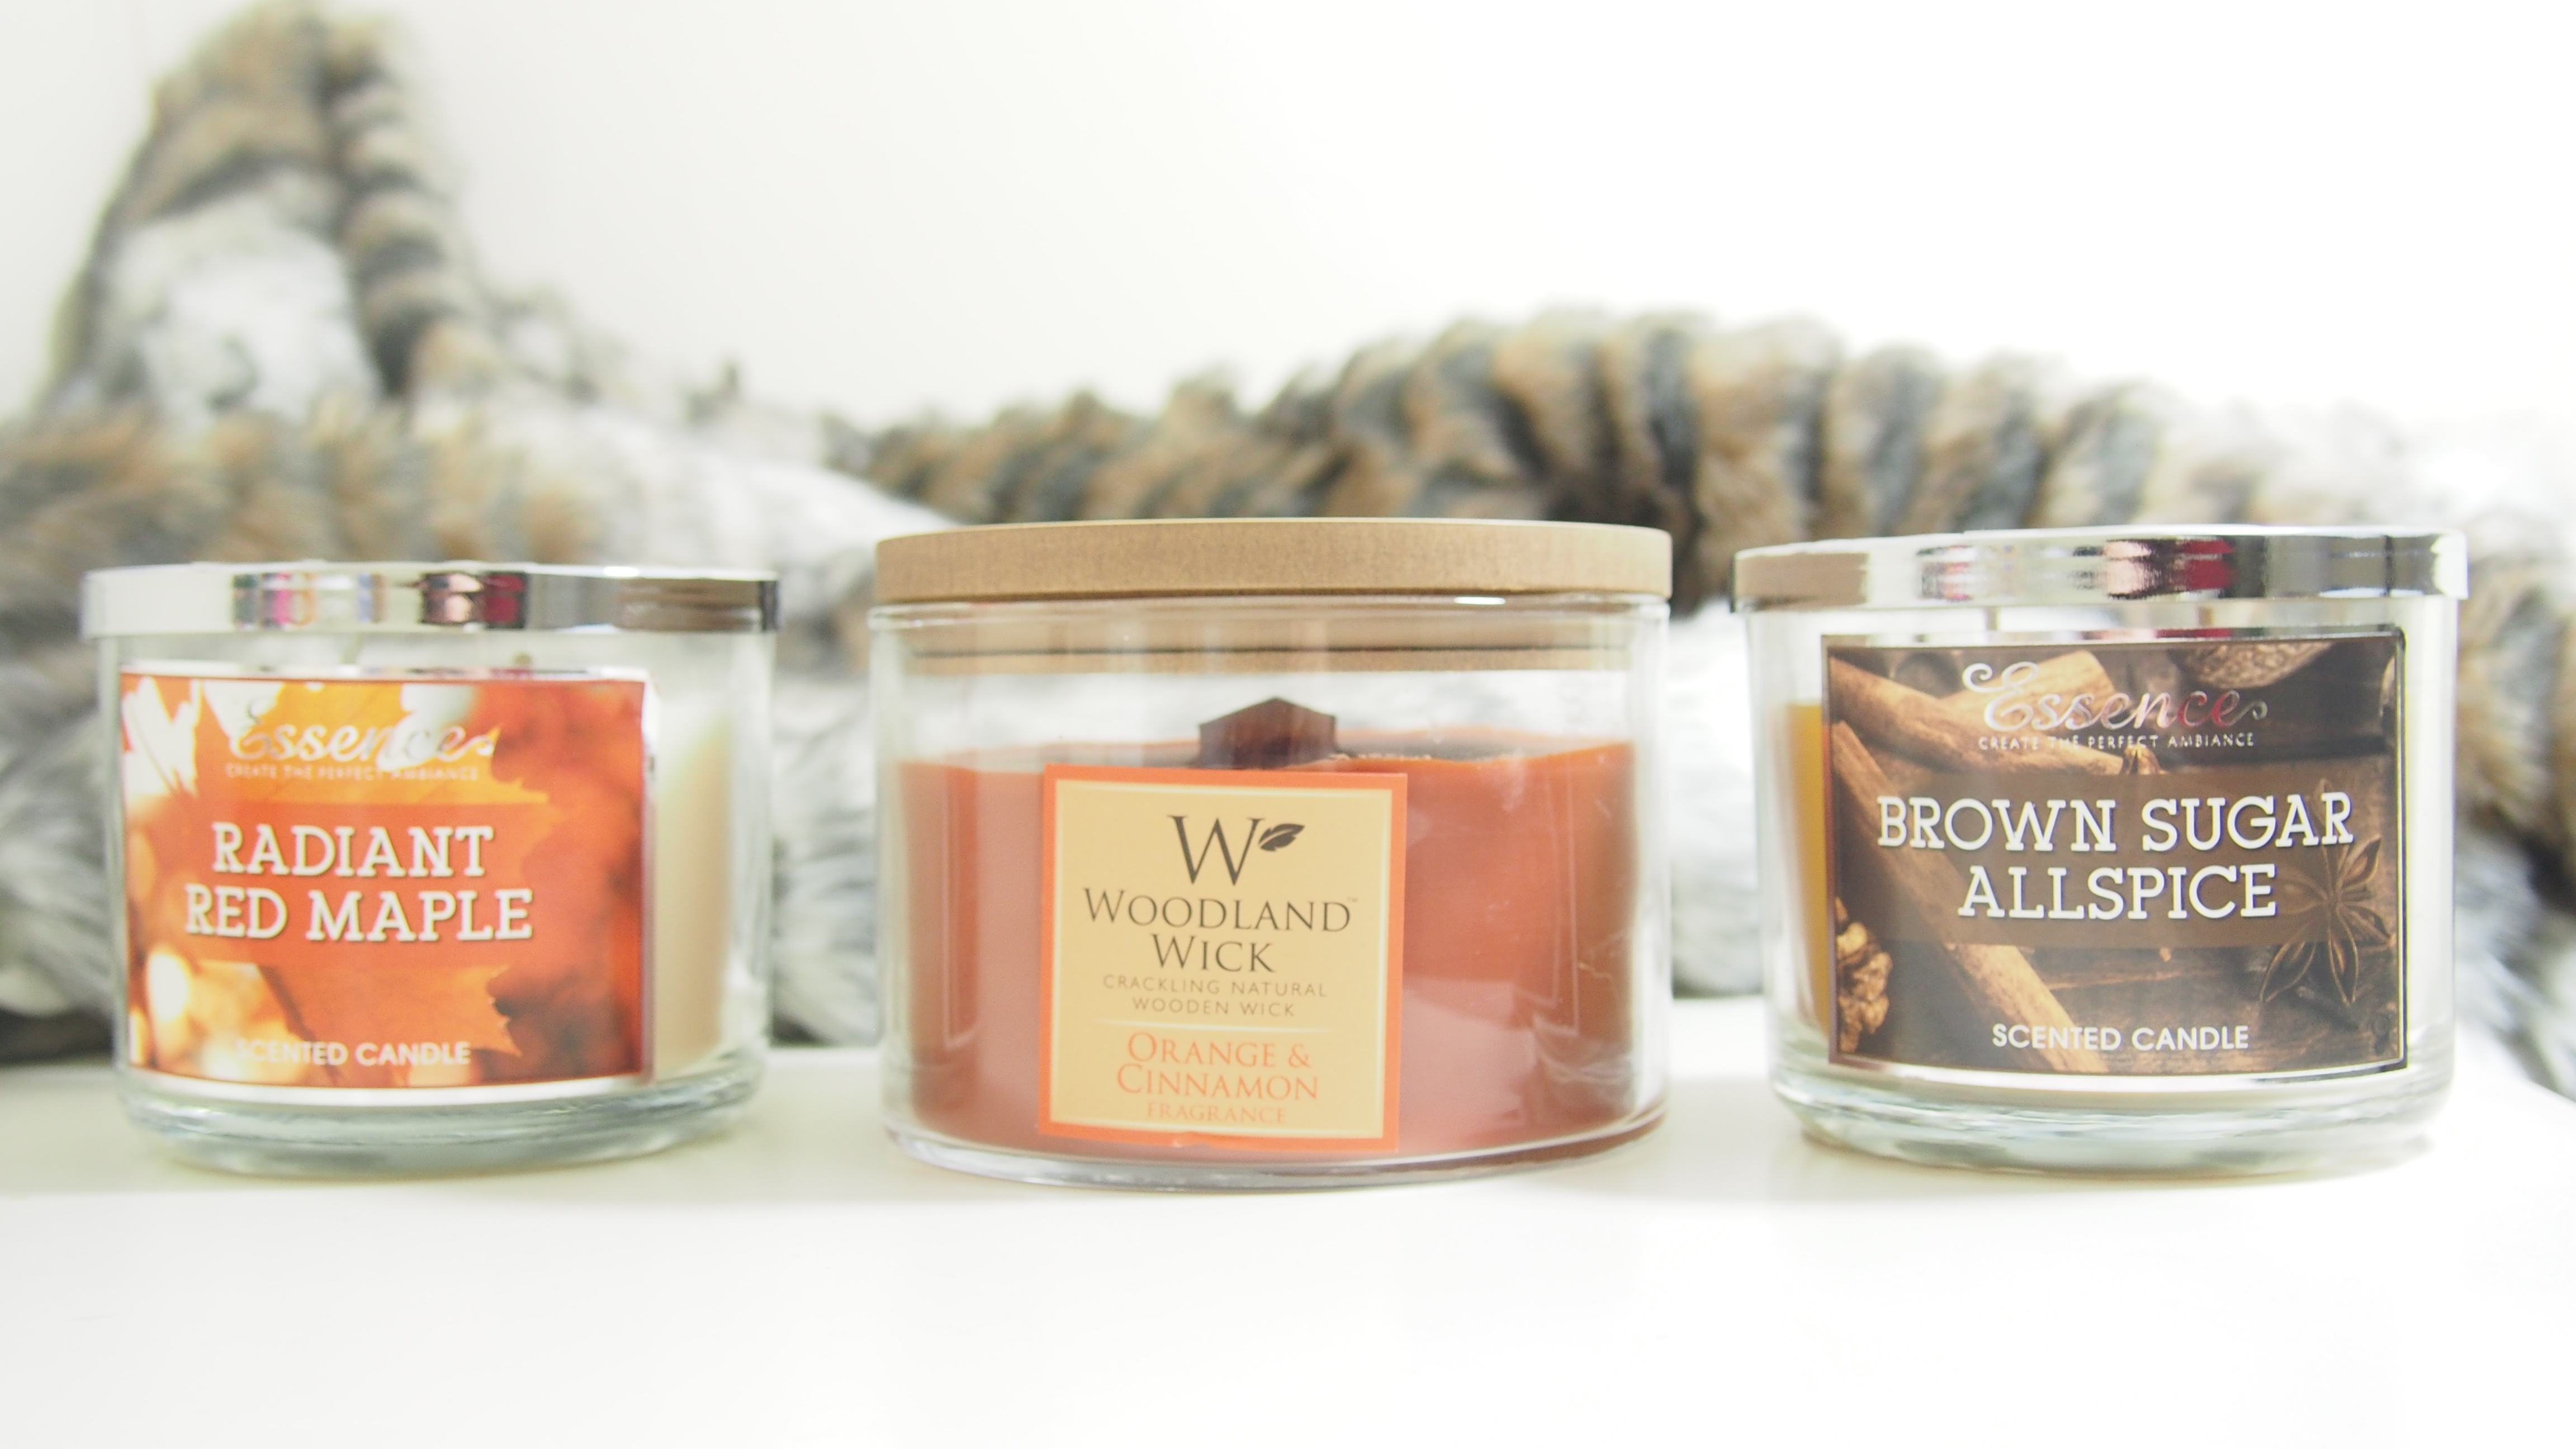 Cactus Blossom 3 Wick Candle